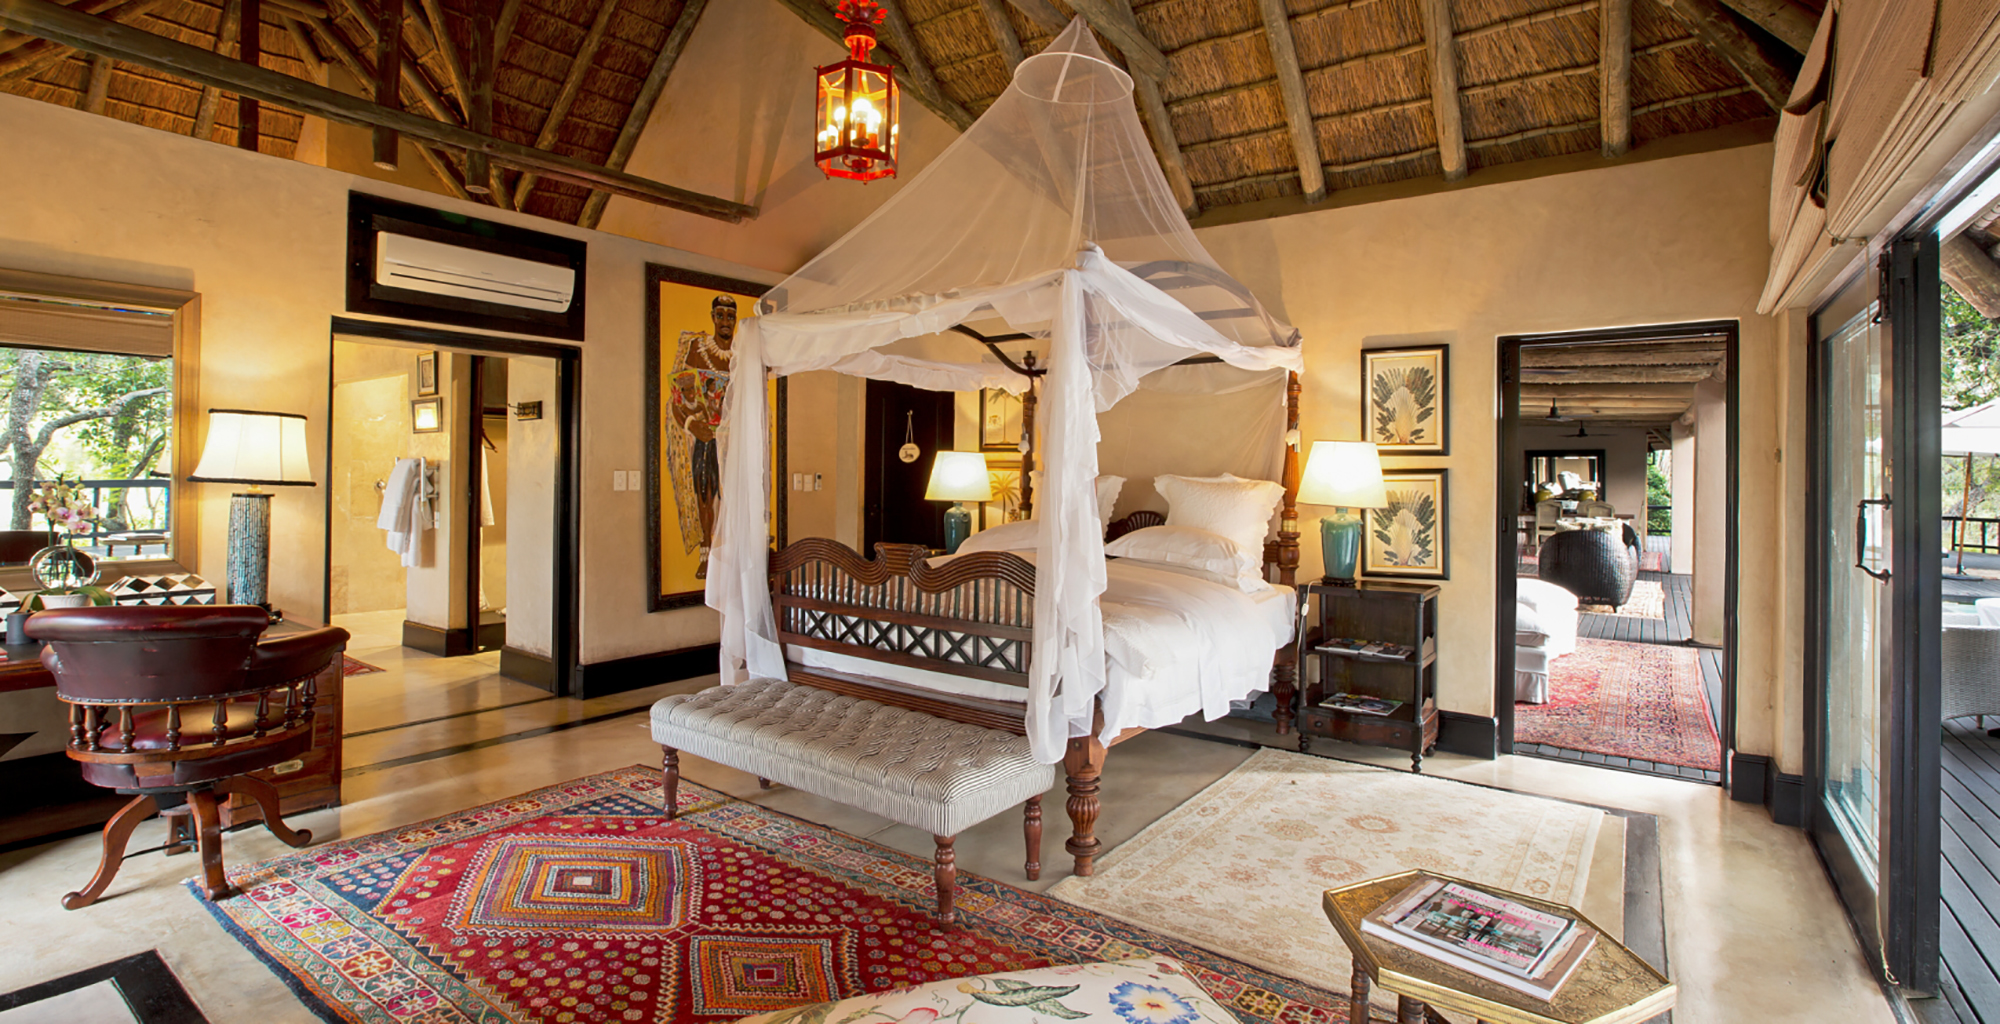 South-Africa-Royal-Malewane-Bedroom